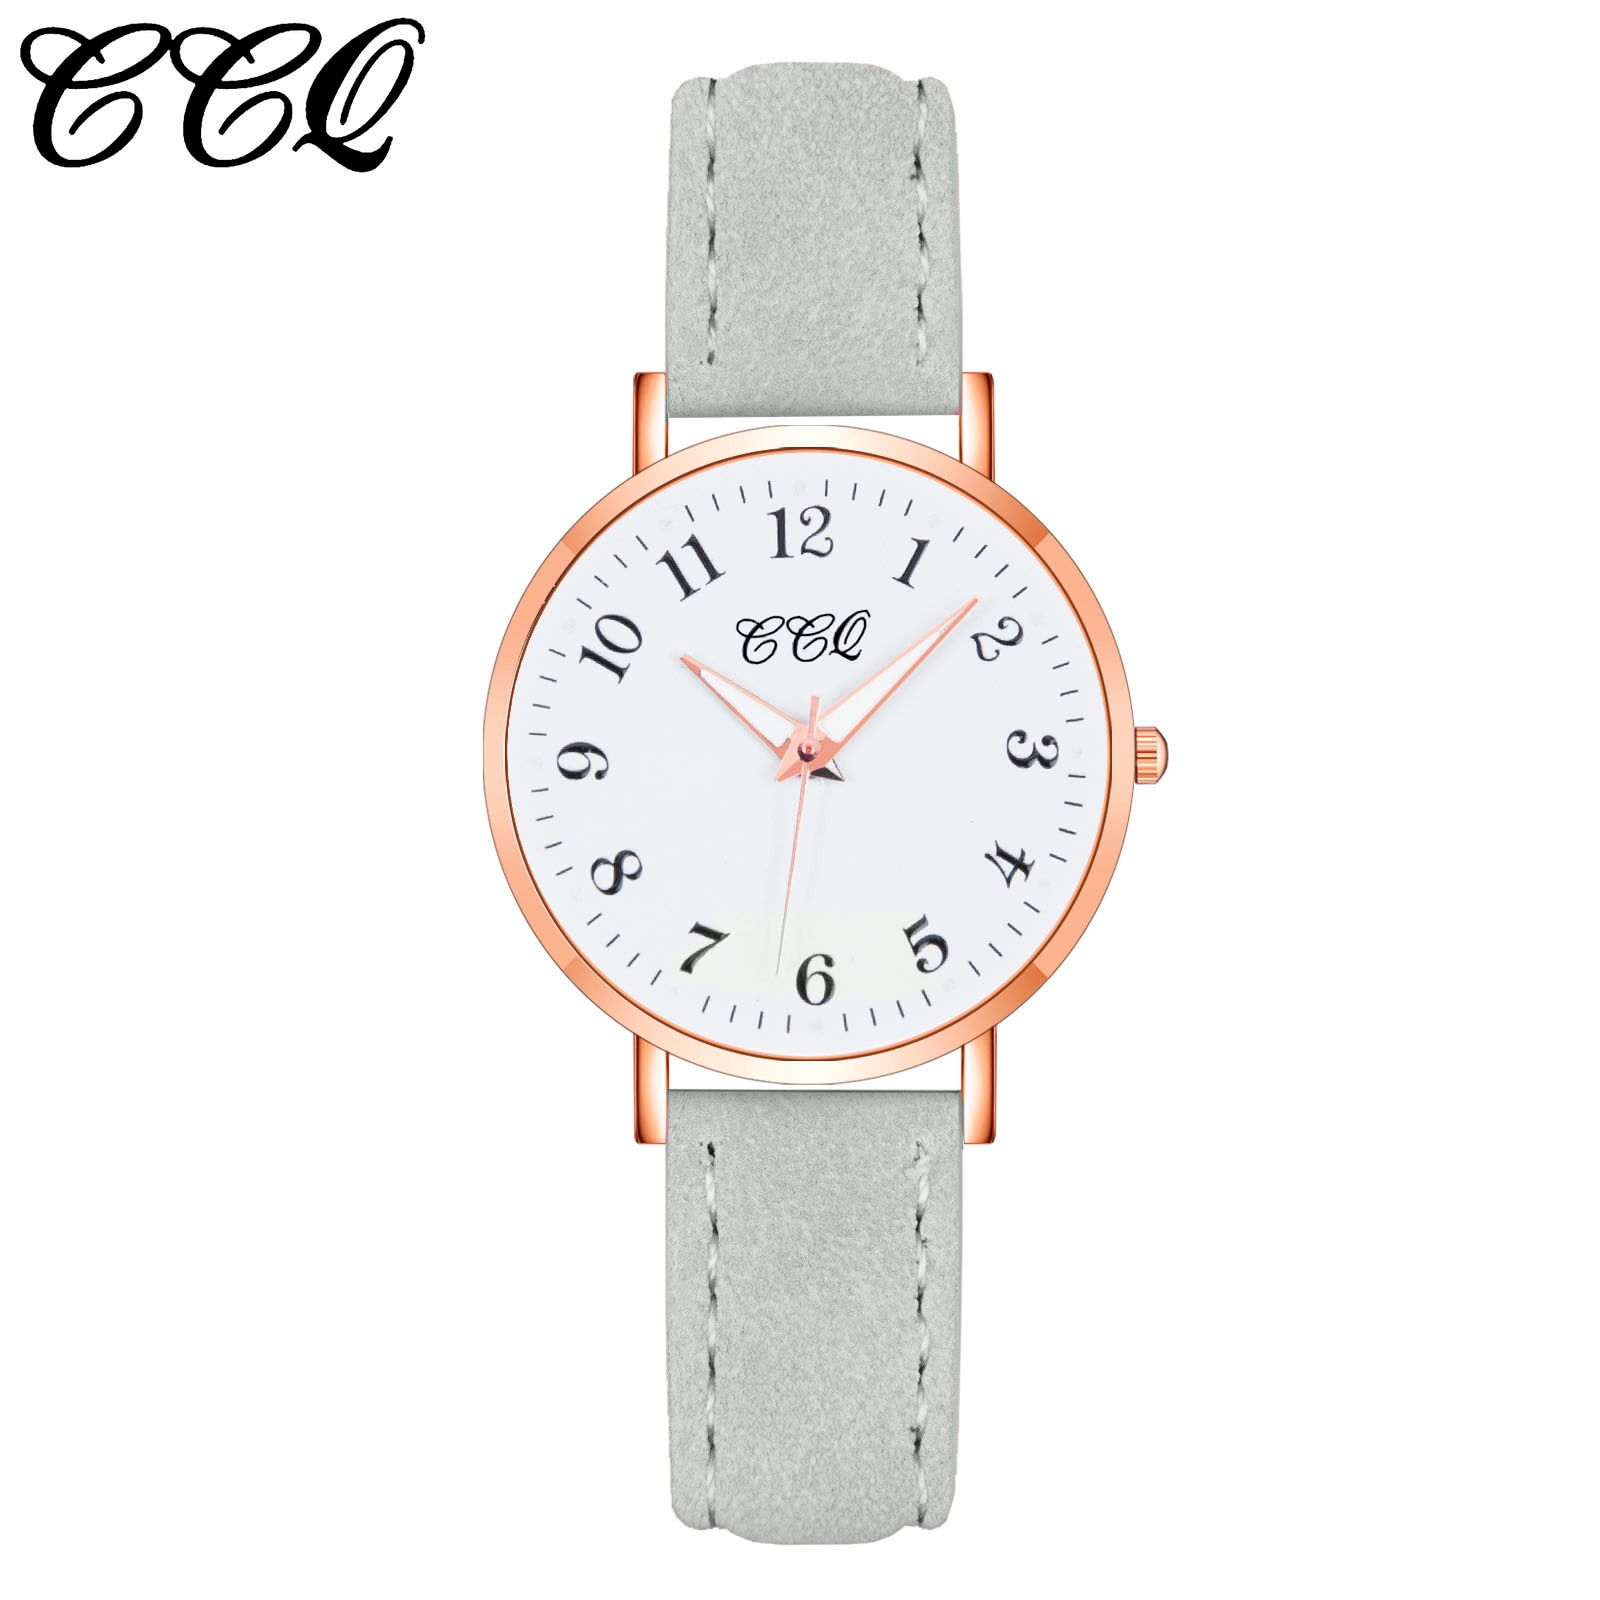 2020 NEW Watch Women Fashion Casual Leather Belt Watches Simple Ladies' Small Dial Quartz Clock Dress Wristwatches Reloj mujer simple dial bamboo wood watch men leather band women watches quartz fashion lovers couple clock gift reloj mujer erkek kol saate